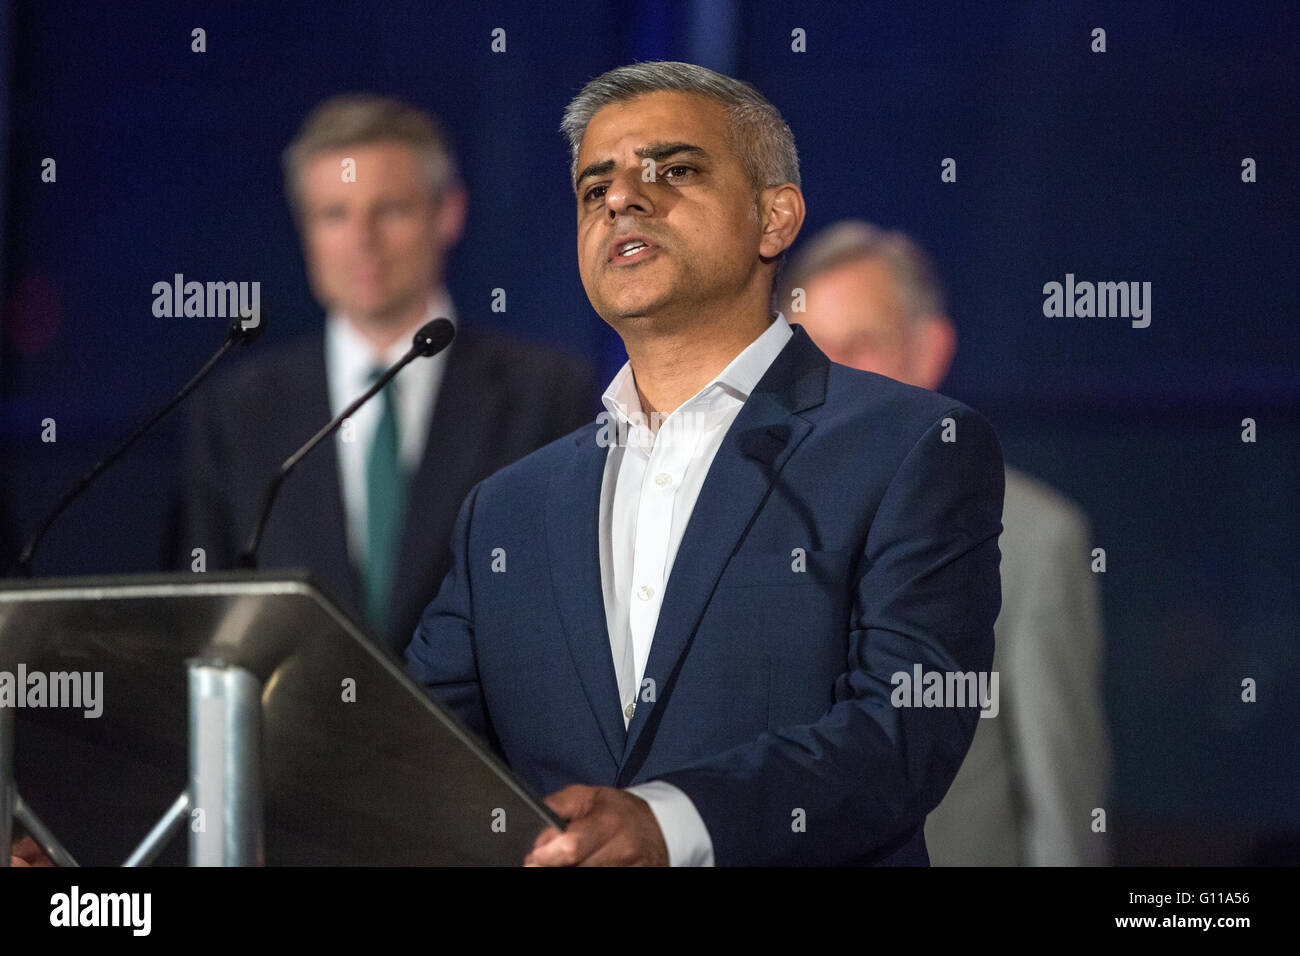 London, UK. 7th May, 2016. Sadiq Khan makes his victory speech at City Hall after being elected as Mayor of London. - Stock Image